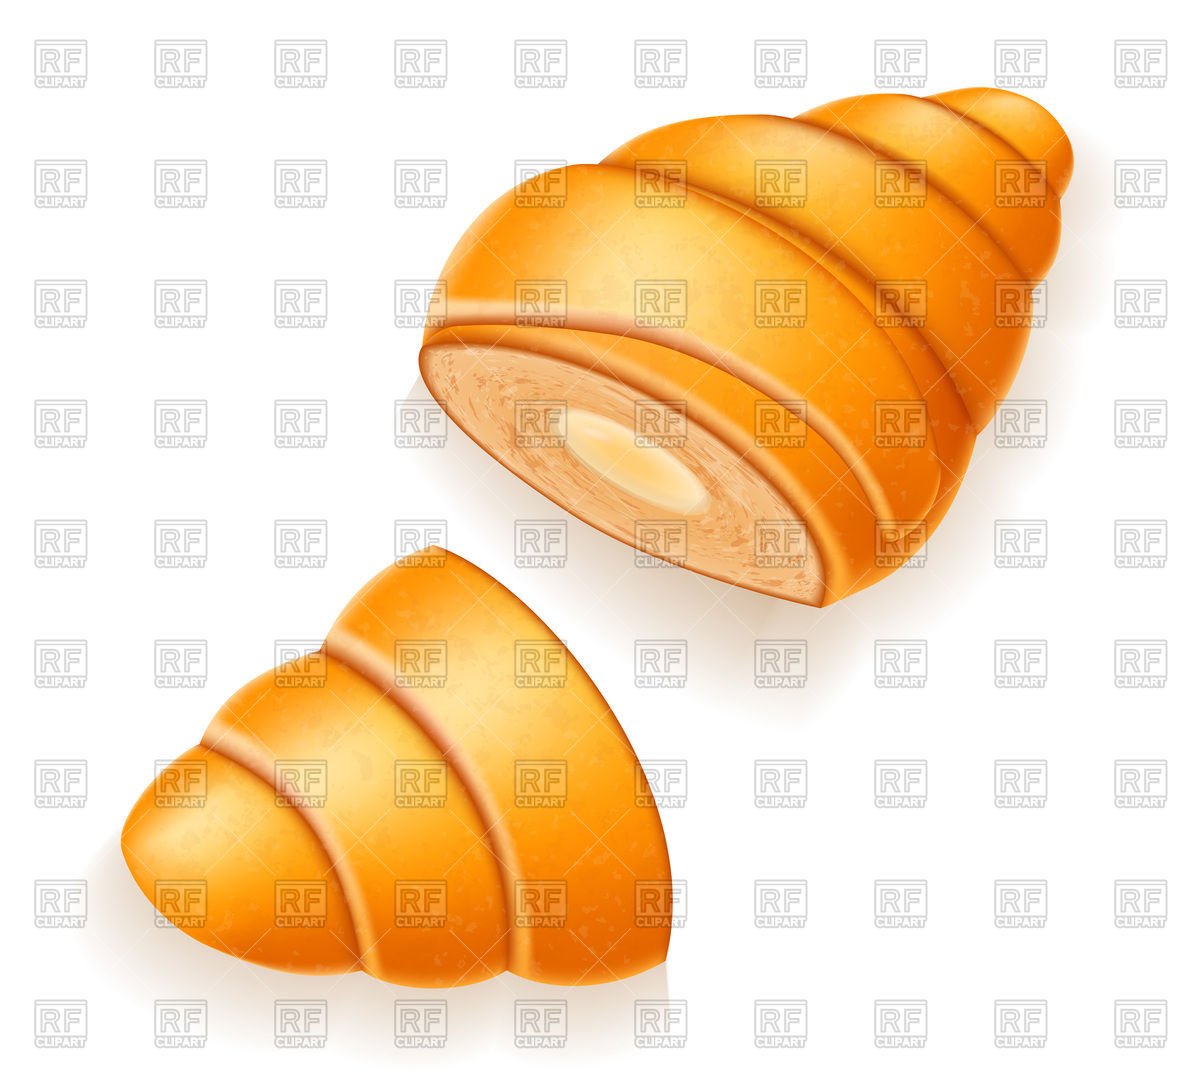 1200x1086 Croissant With Cream Or Condensed Milk Royalty Free Vector Clip